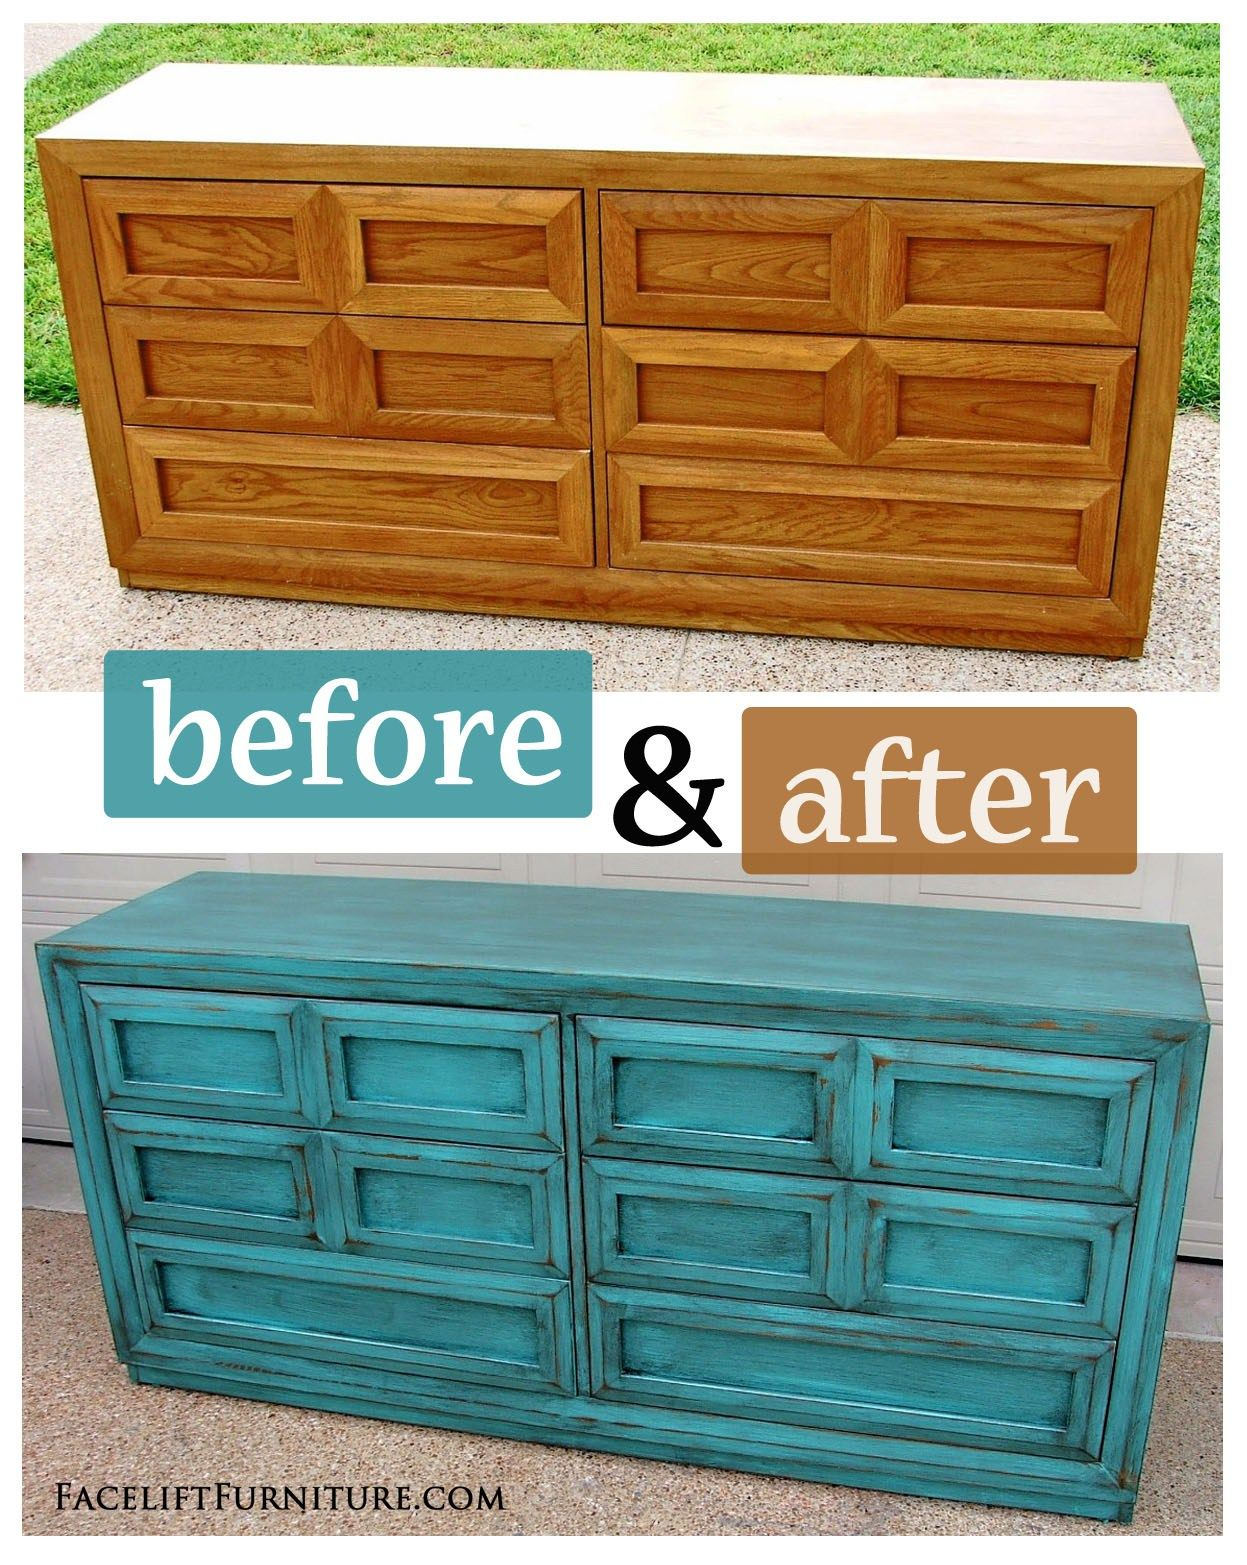 furniture kommode img s turquoise lessons flipping aleksandra ombre learned